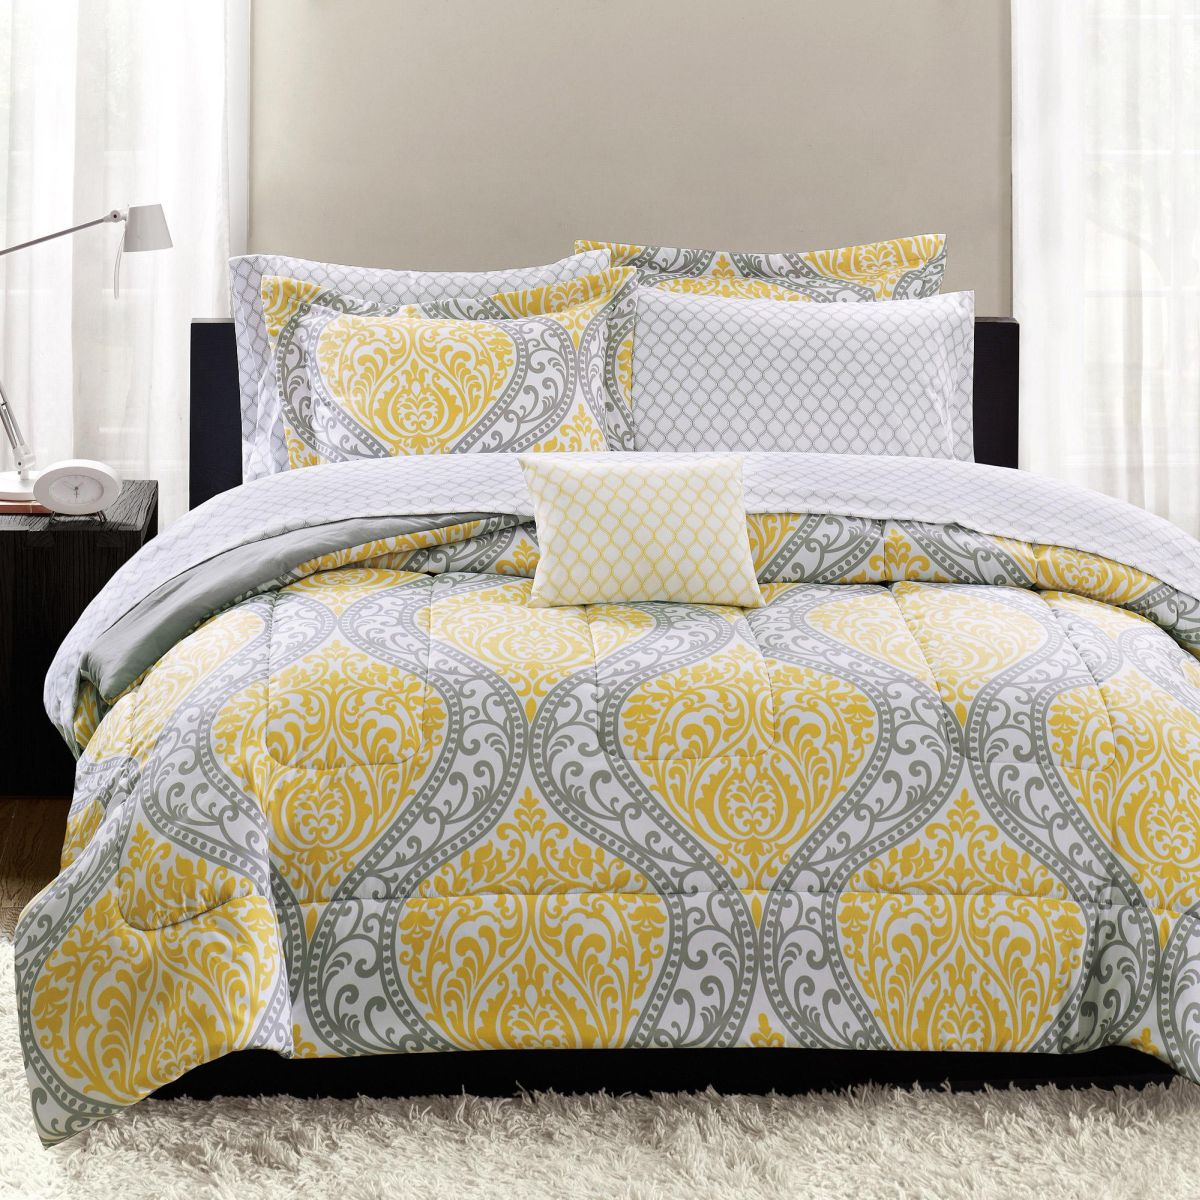 Queen Bed Sheets Walmart Canada